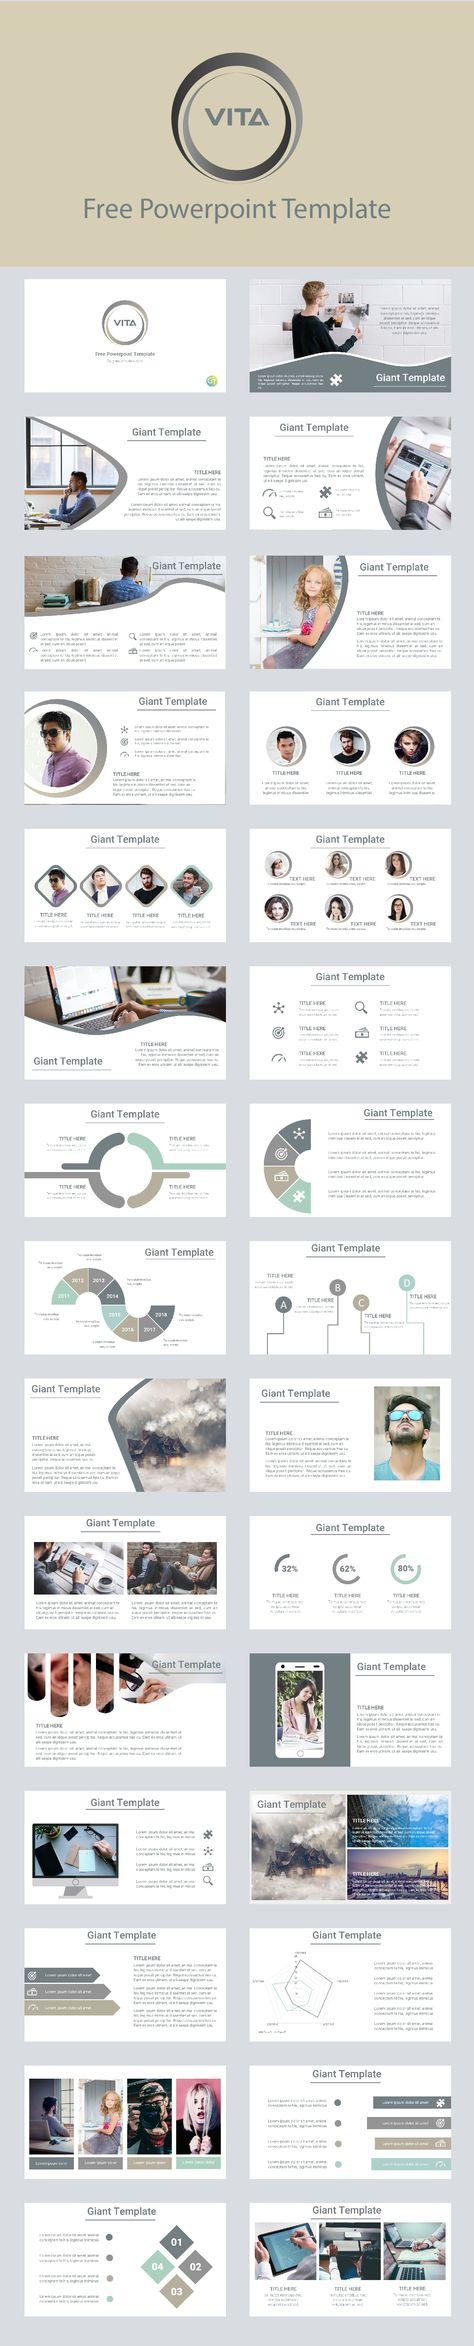 Business Powerpoint Templates 2018 Free Download - Free Powerpoint Templates, Download Template PTT